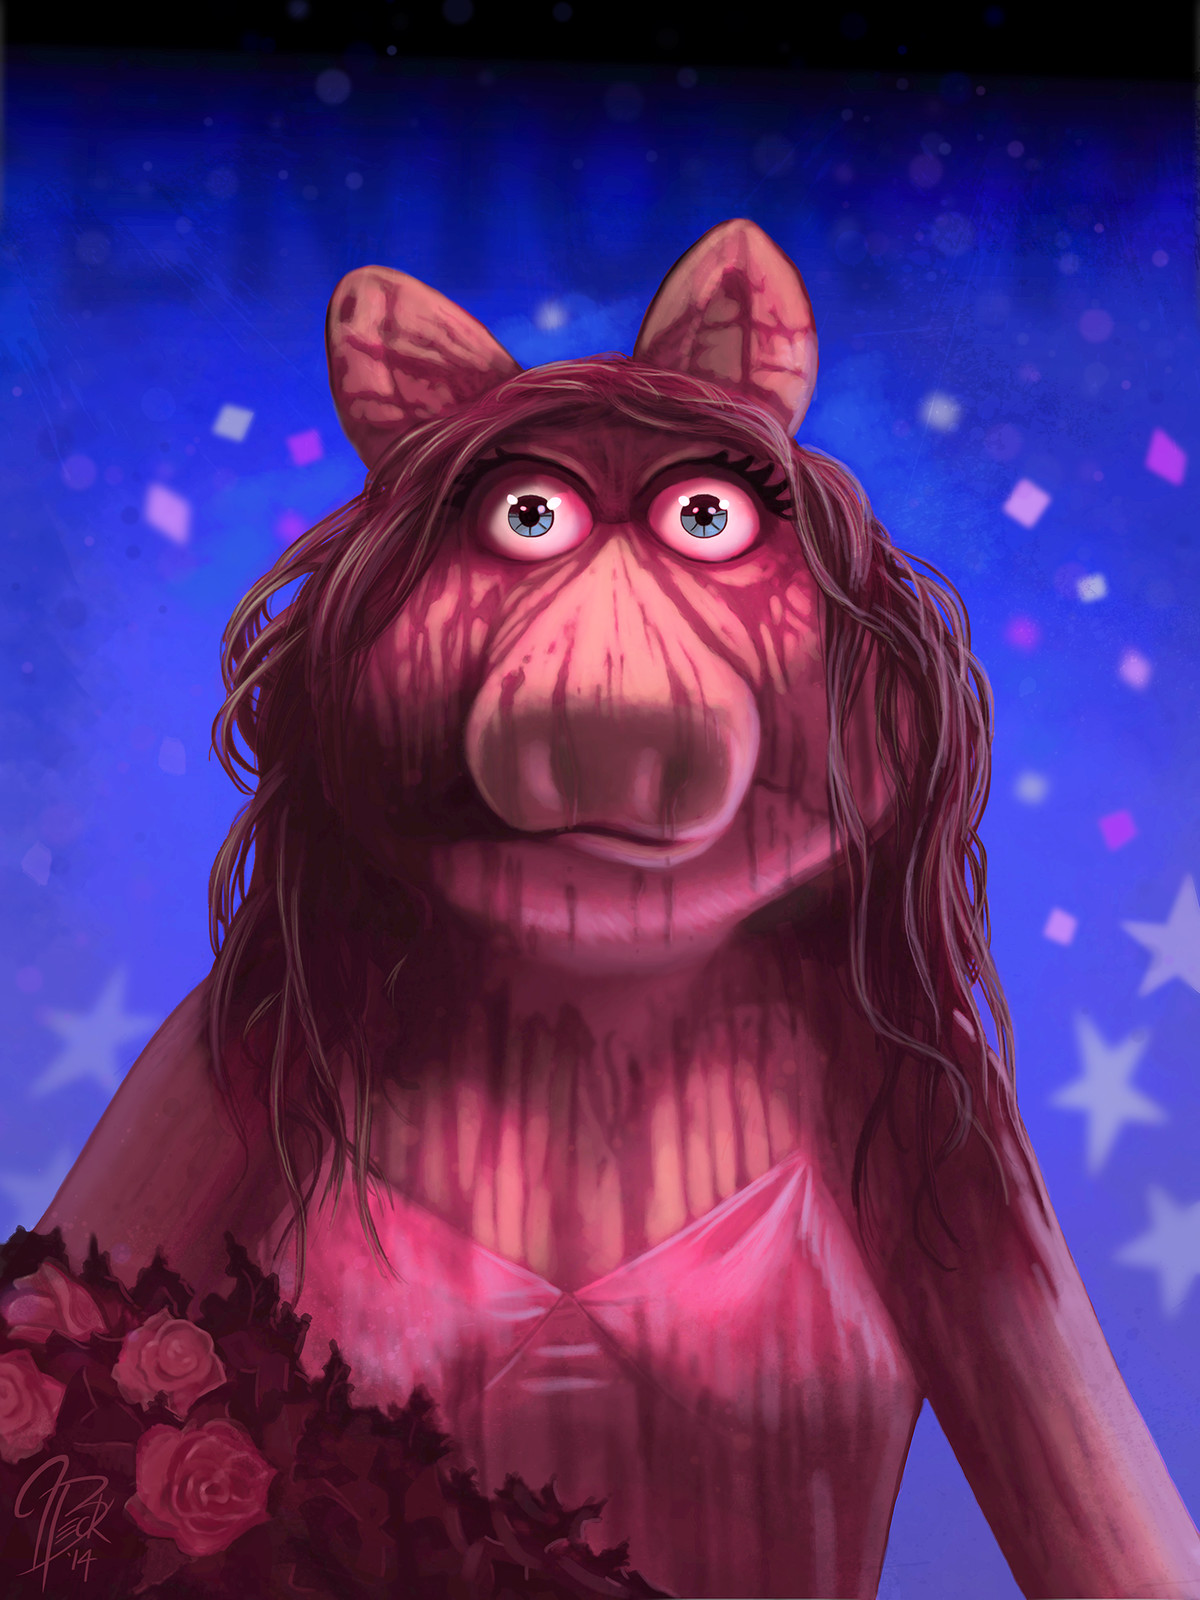 Ms. Piggy as Carrie White